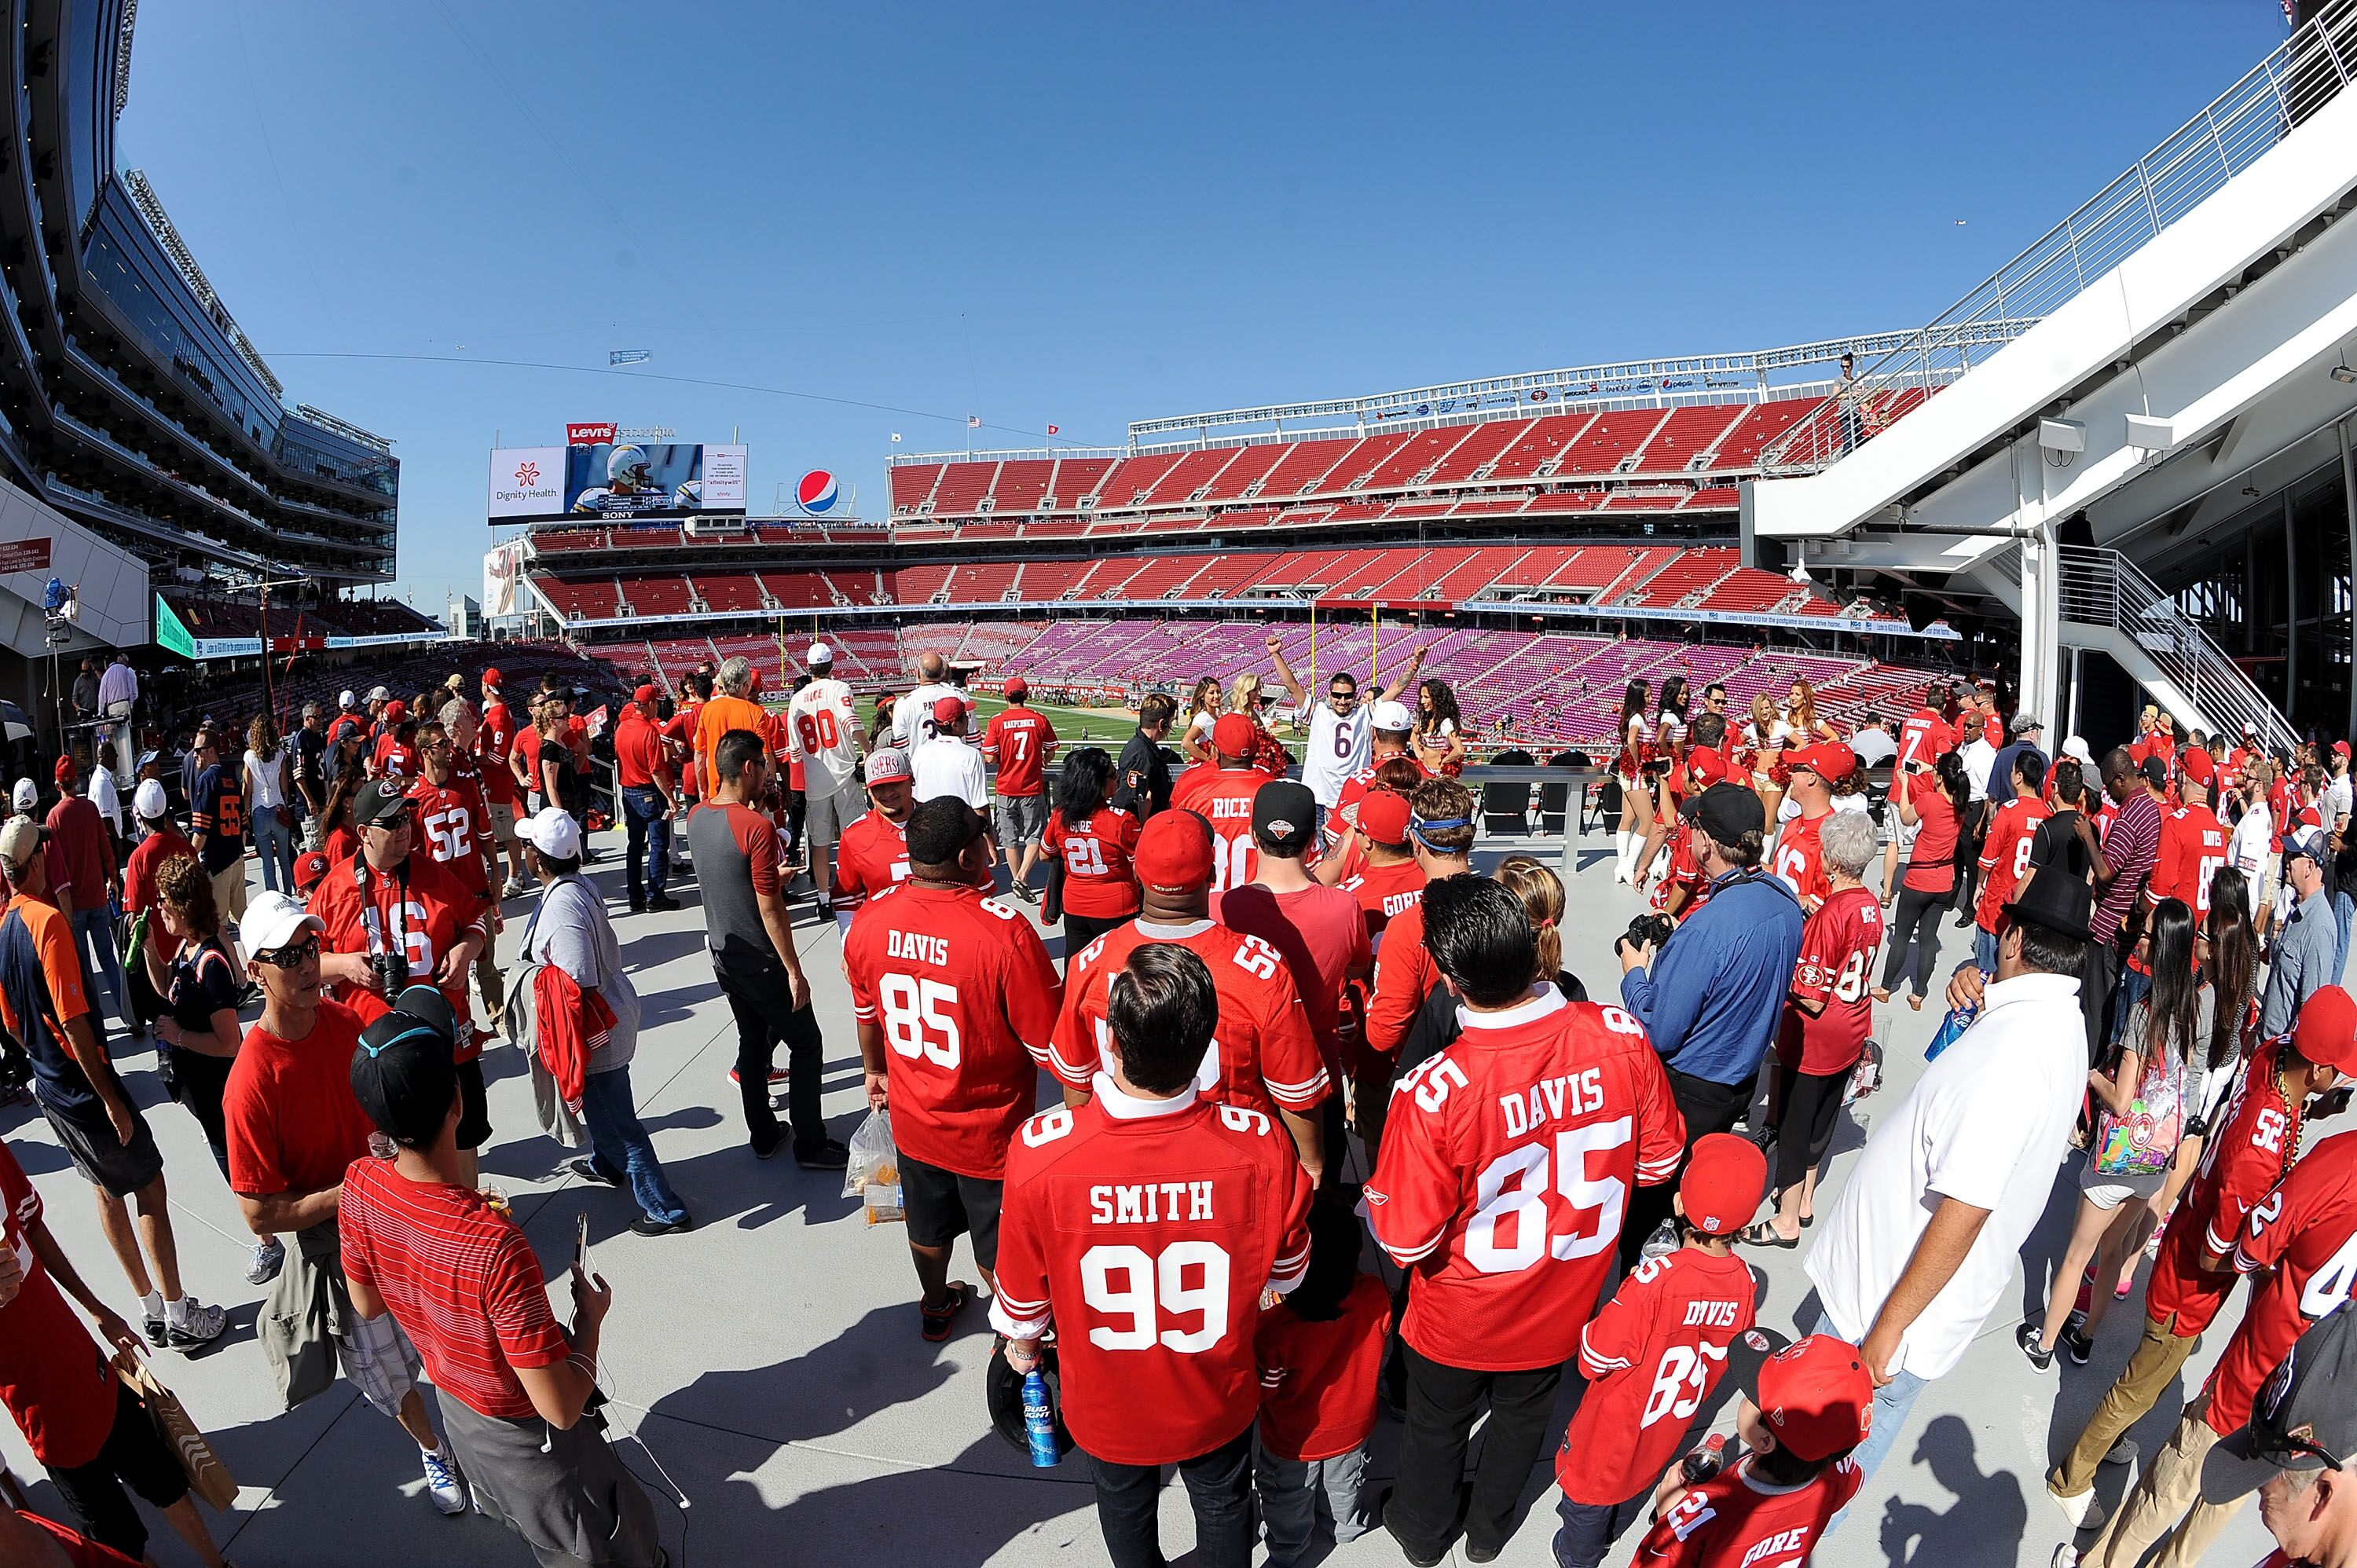 Levi s Stadium should drop concession prices for 49ers games